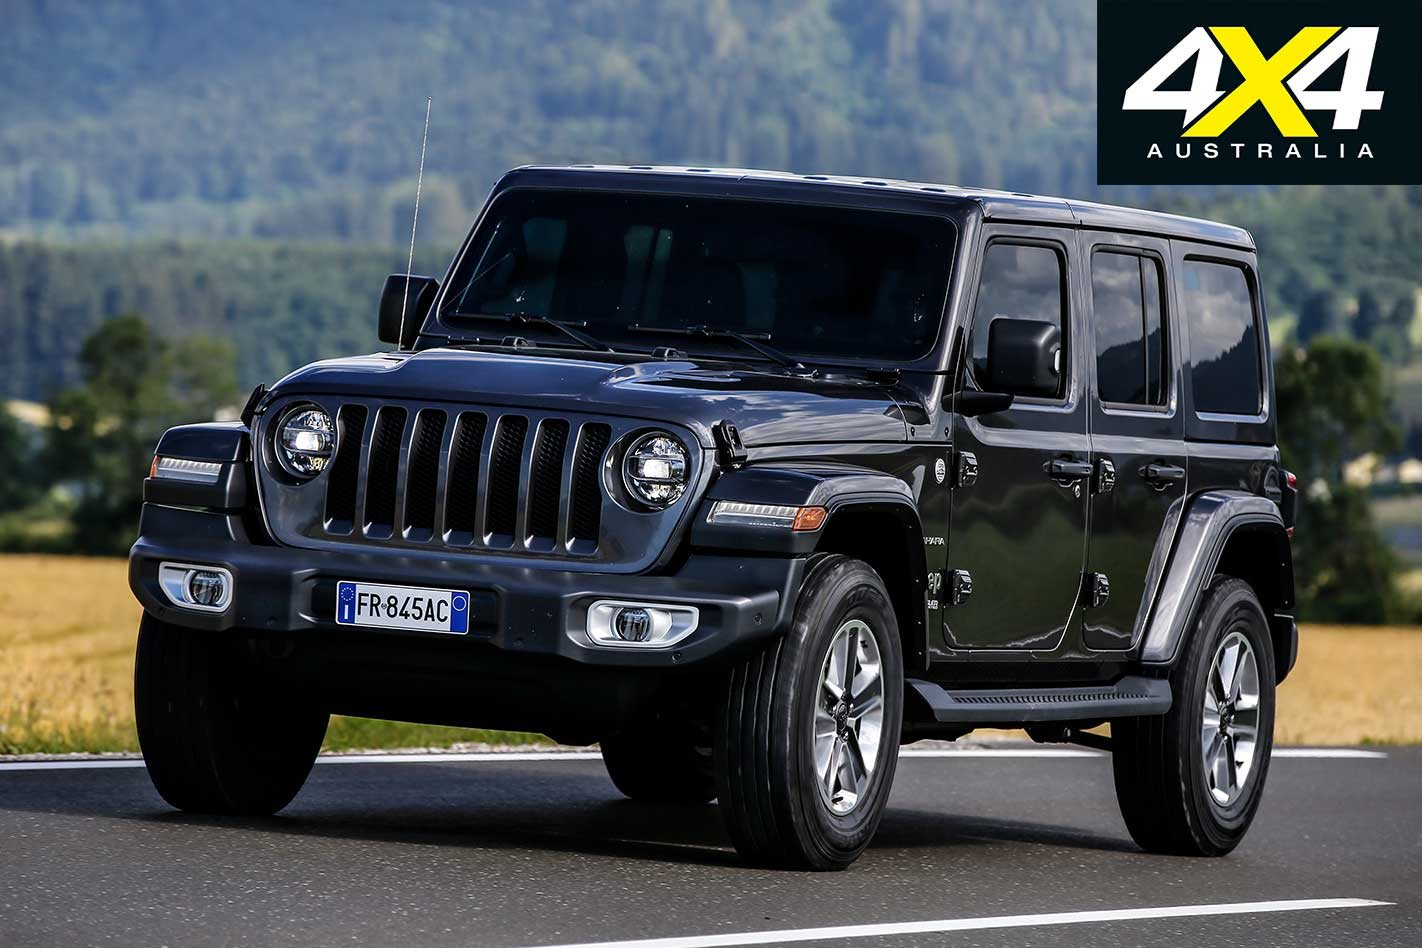 Jeep Jl Wrangler Powertrain Details Yj Engine Diagram Parts List Command Trac Remains The 4x4 System For Most Models With Rock Standard On Rubicon Variants Part Time